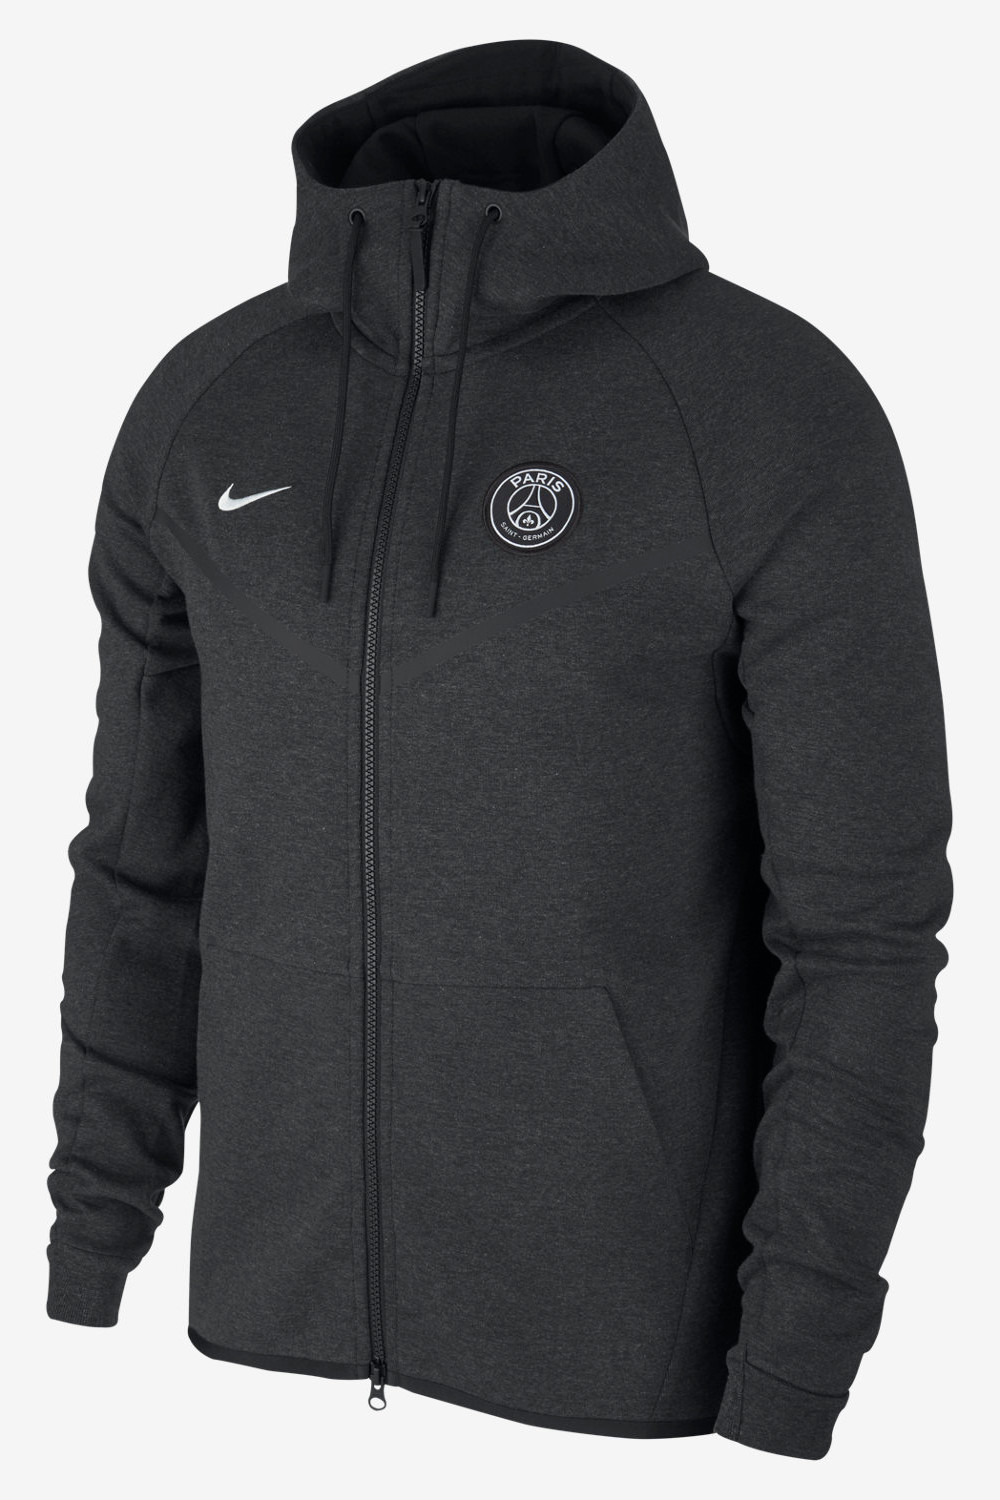 psg nike training jacke jacket schwarz tech fleece